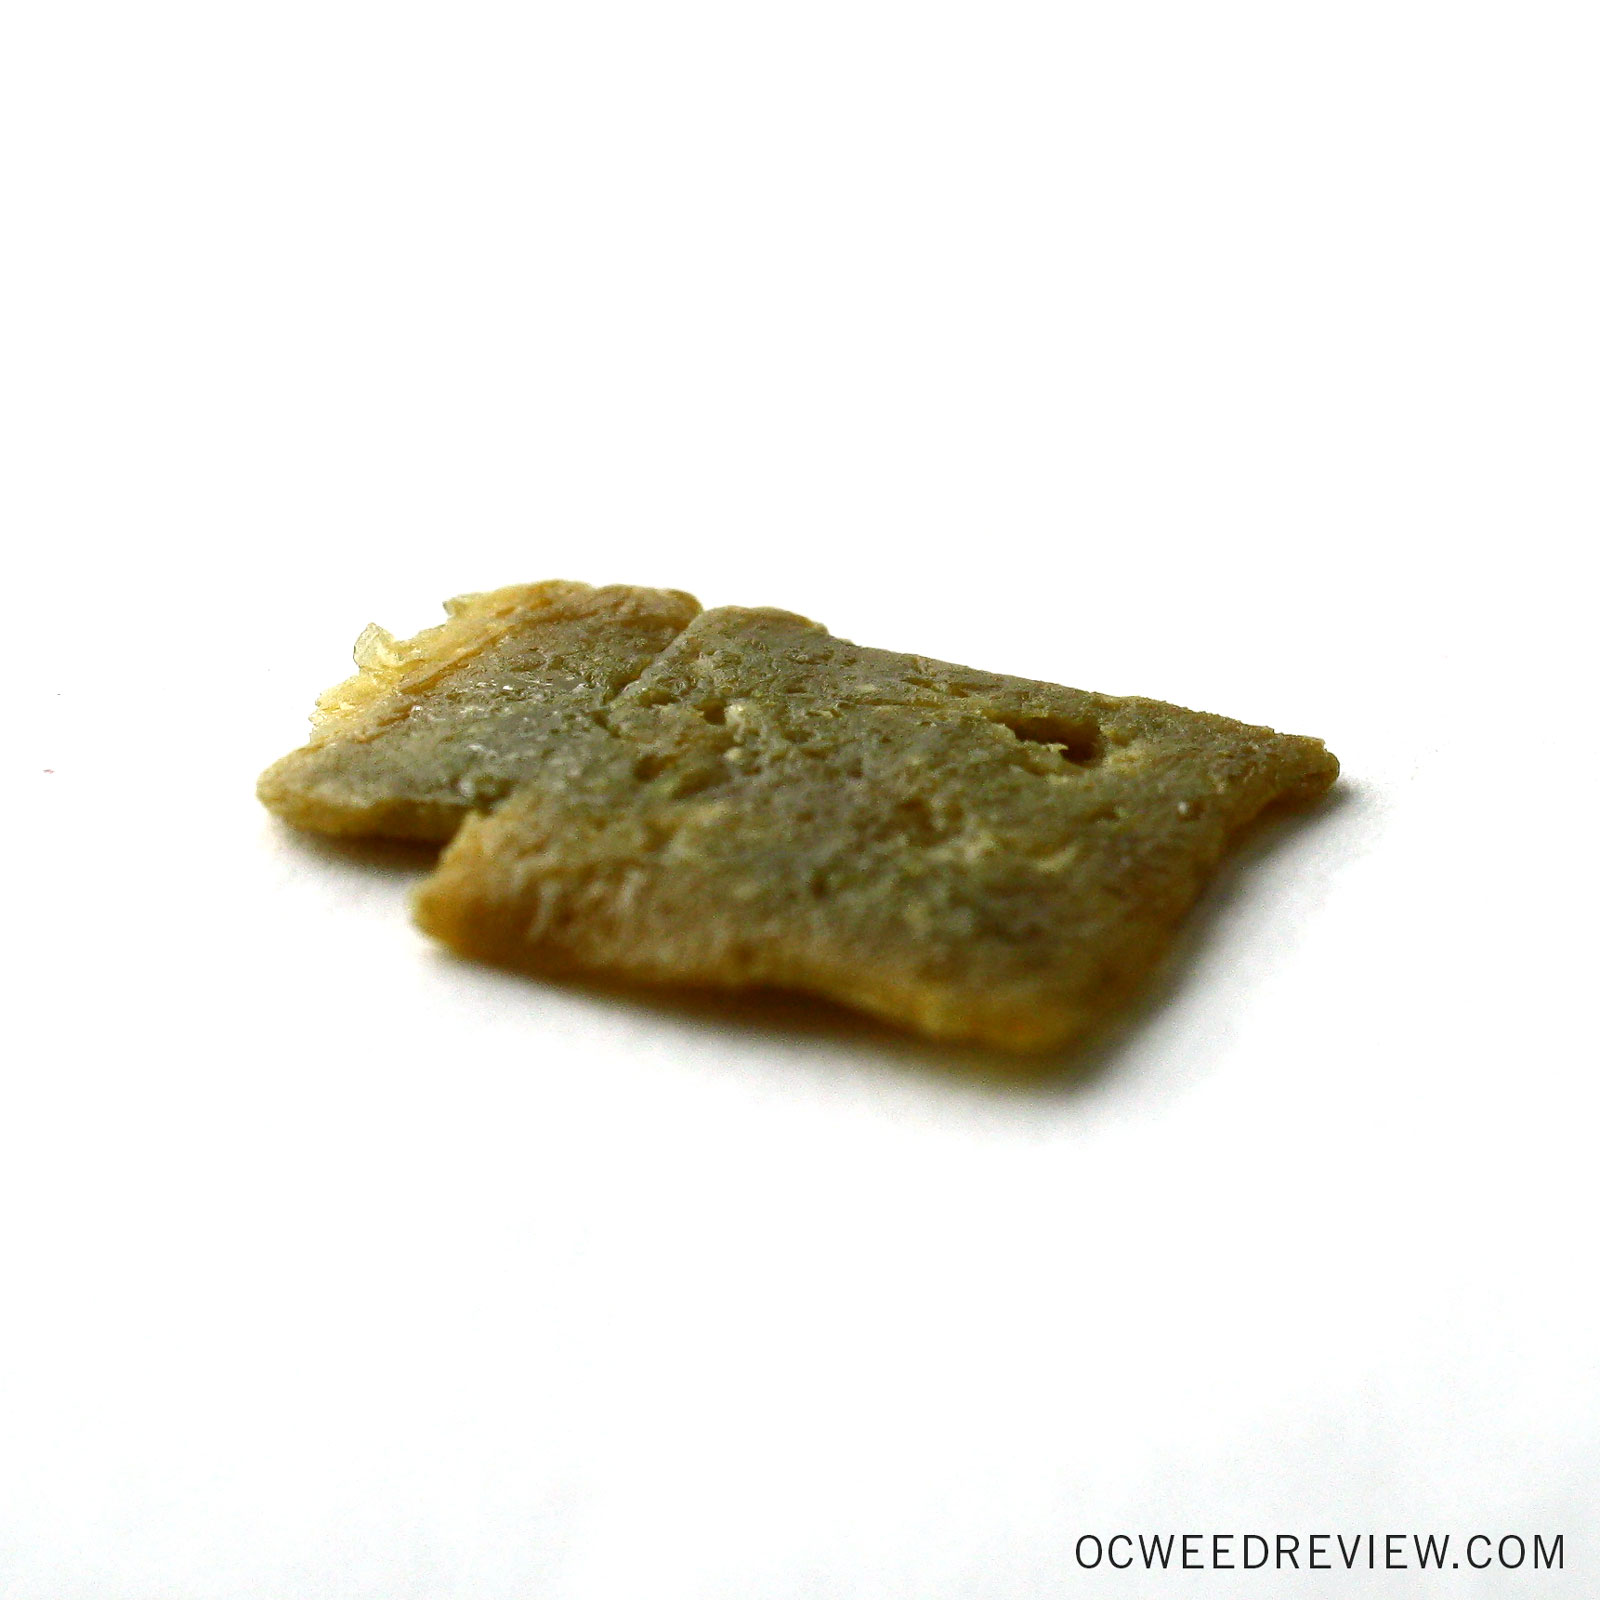 Remington Extracts White Widow Shatter Review